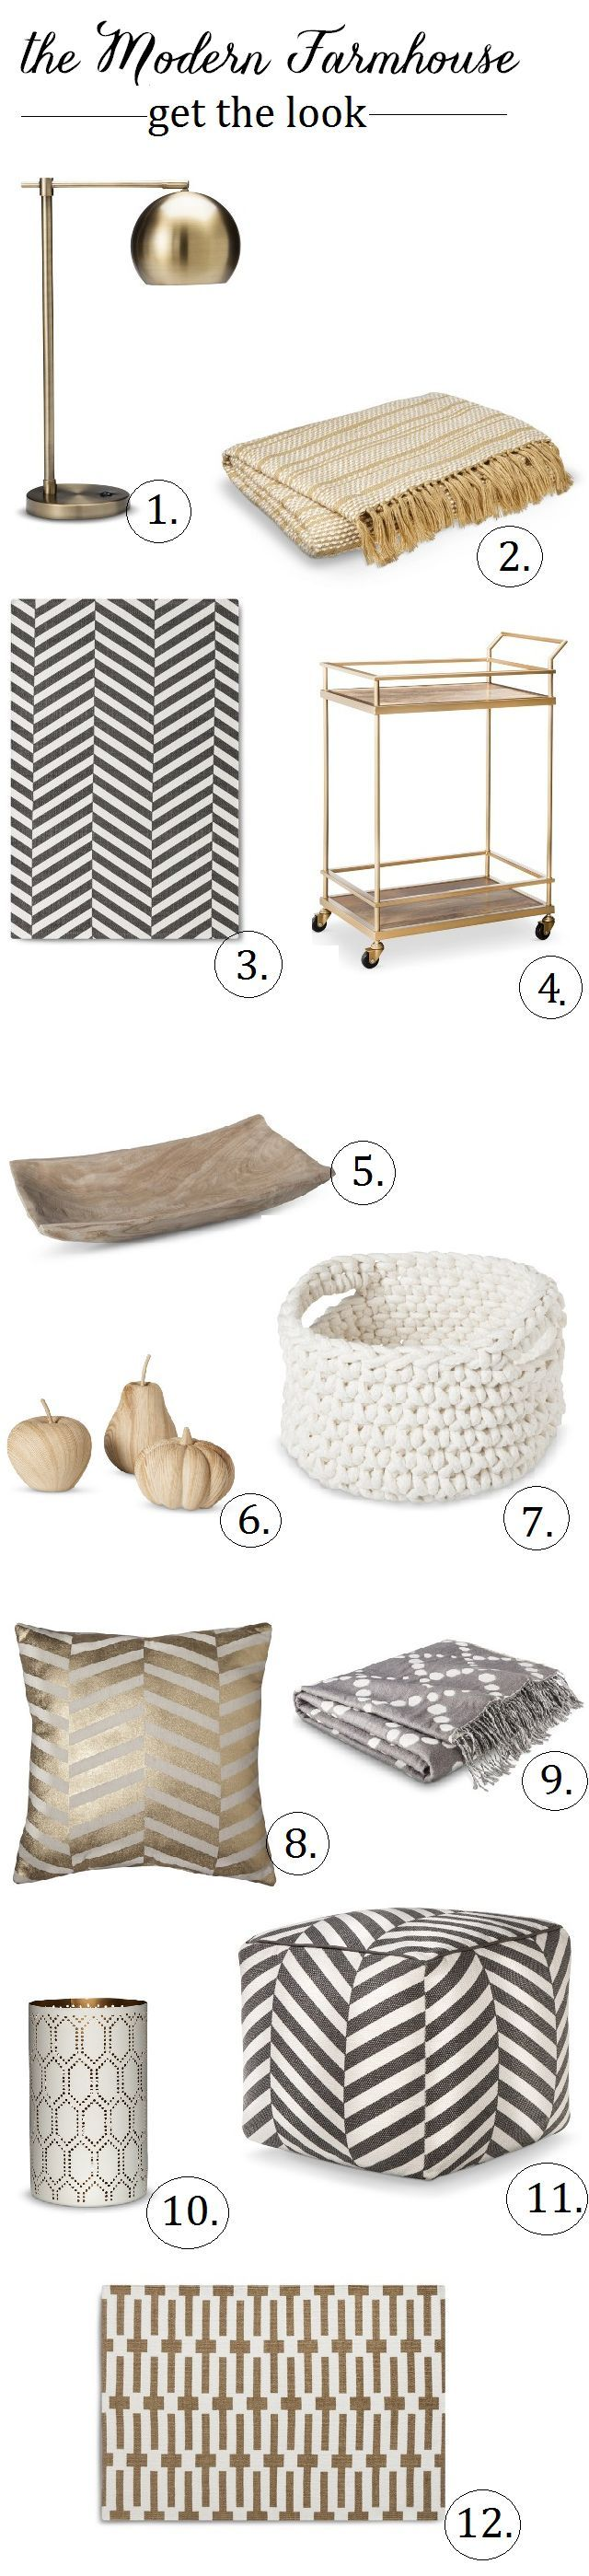 Target kitchen sink accessories - Fall Decorating The Modern Farmhouse